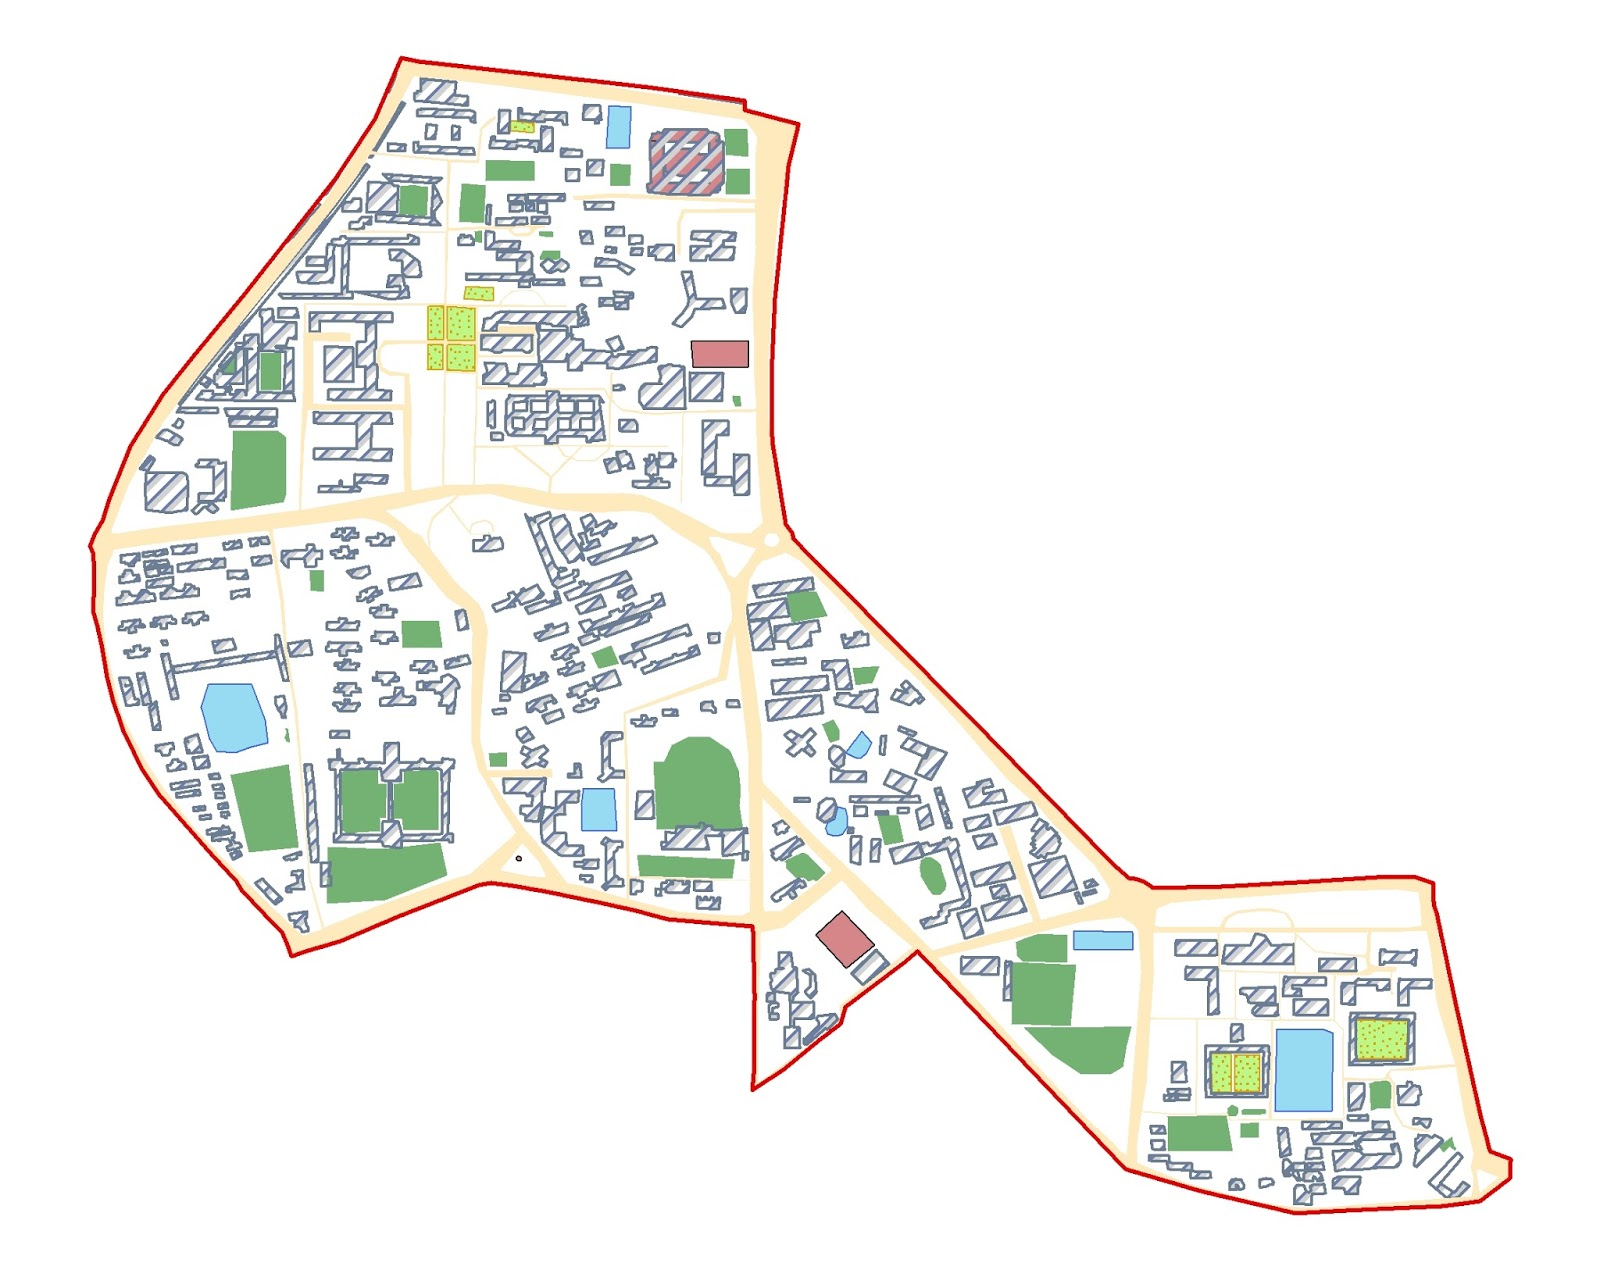 landuse map of dhaka university campus